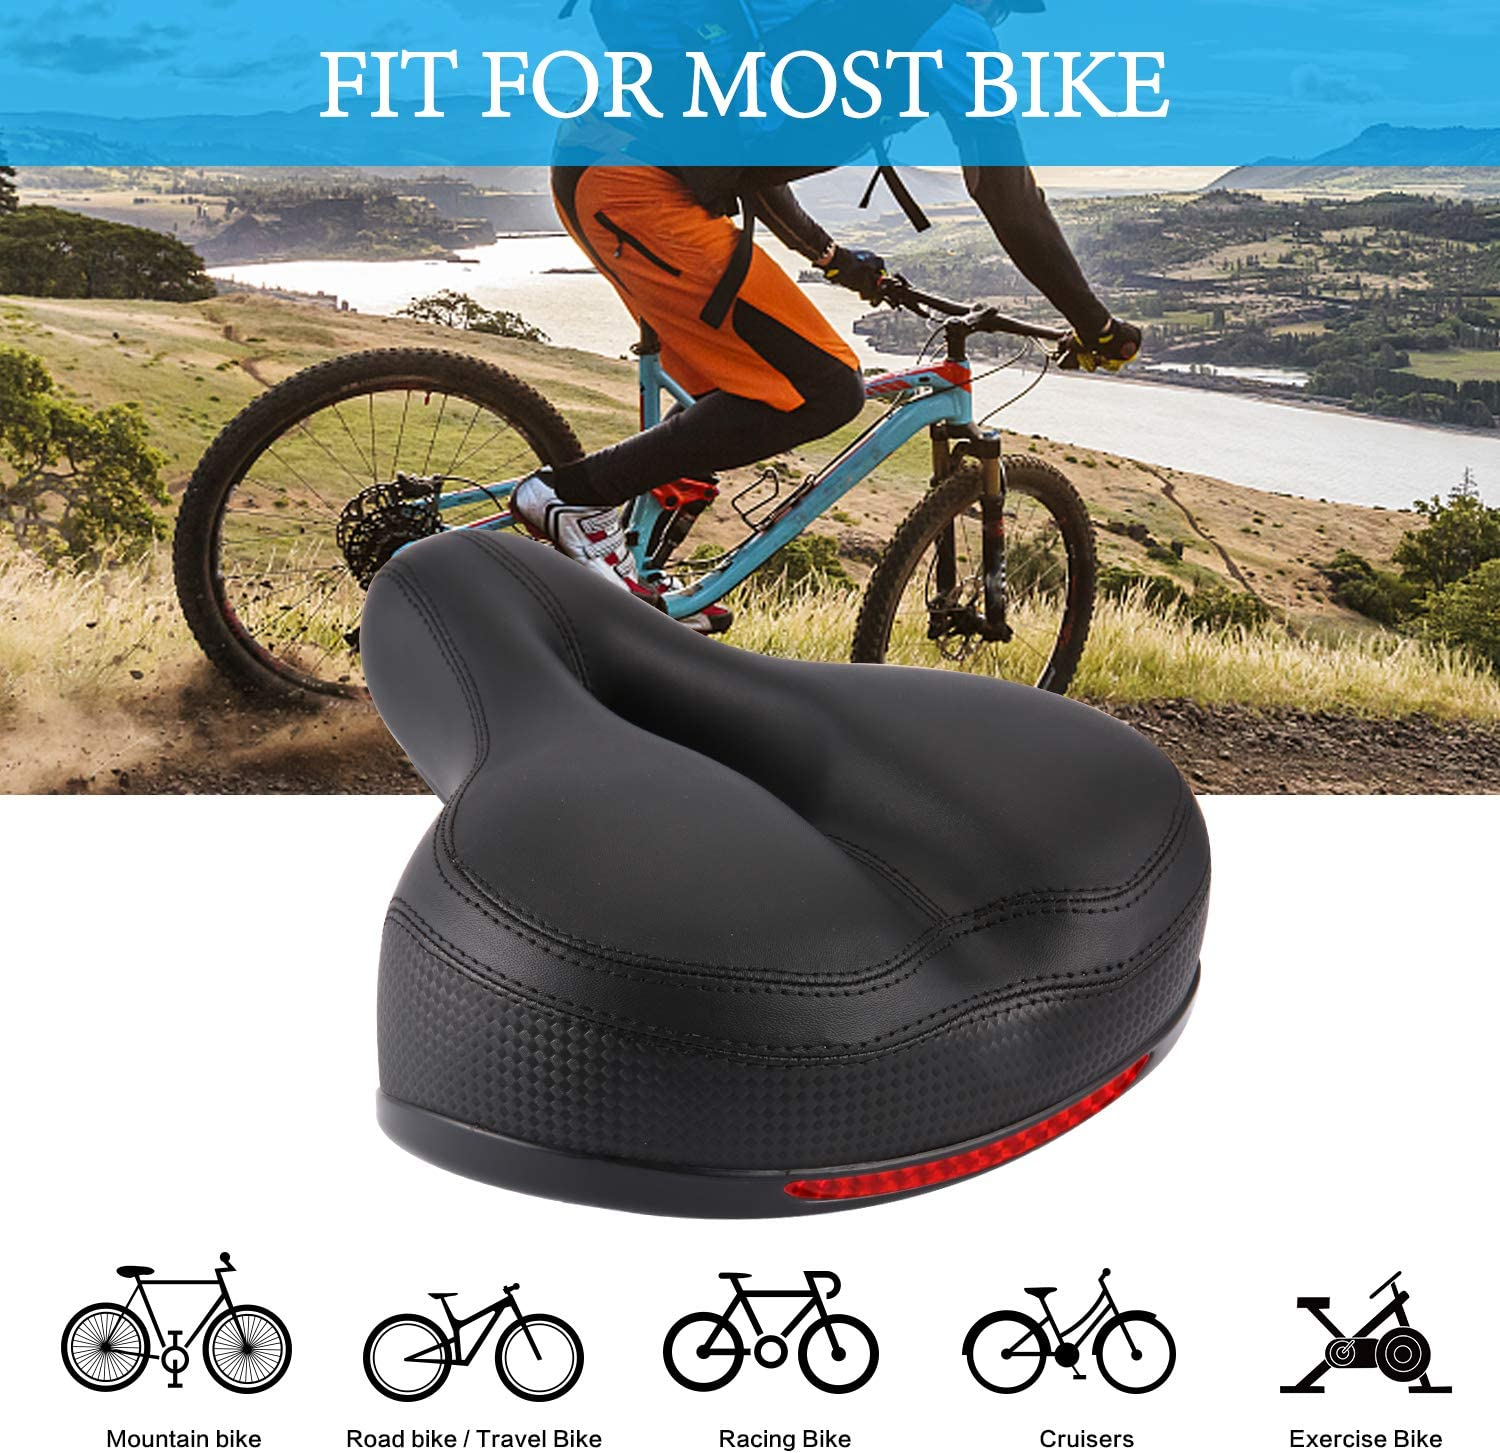 WUTUNS Comfort Bike Seat for Women or Men Silicone Waterproof Sturdy Shock Bicycle Saddle,Taillight Reflective Strip with Double Shock Absorber Ball Saddle Universal Fit for Indoor Outdoor Bikes